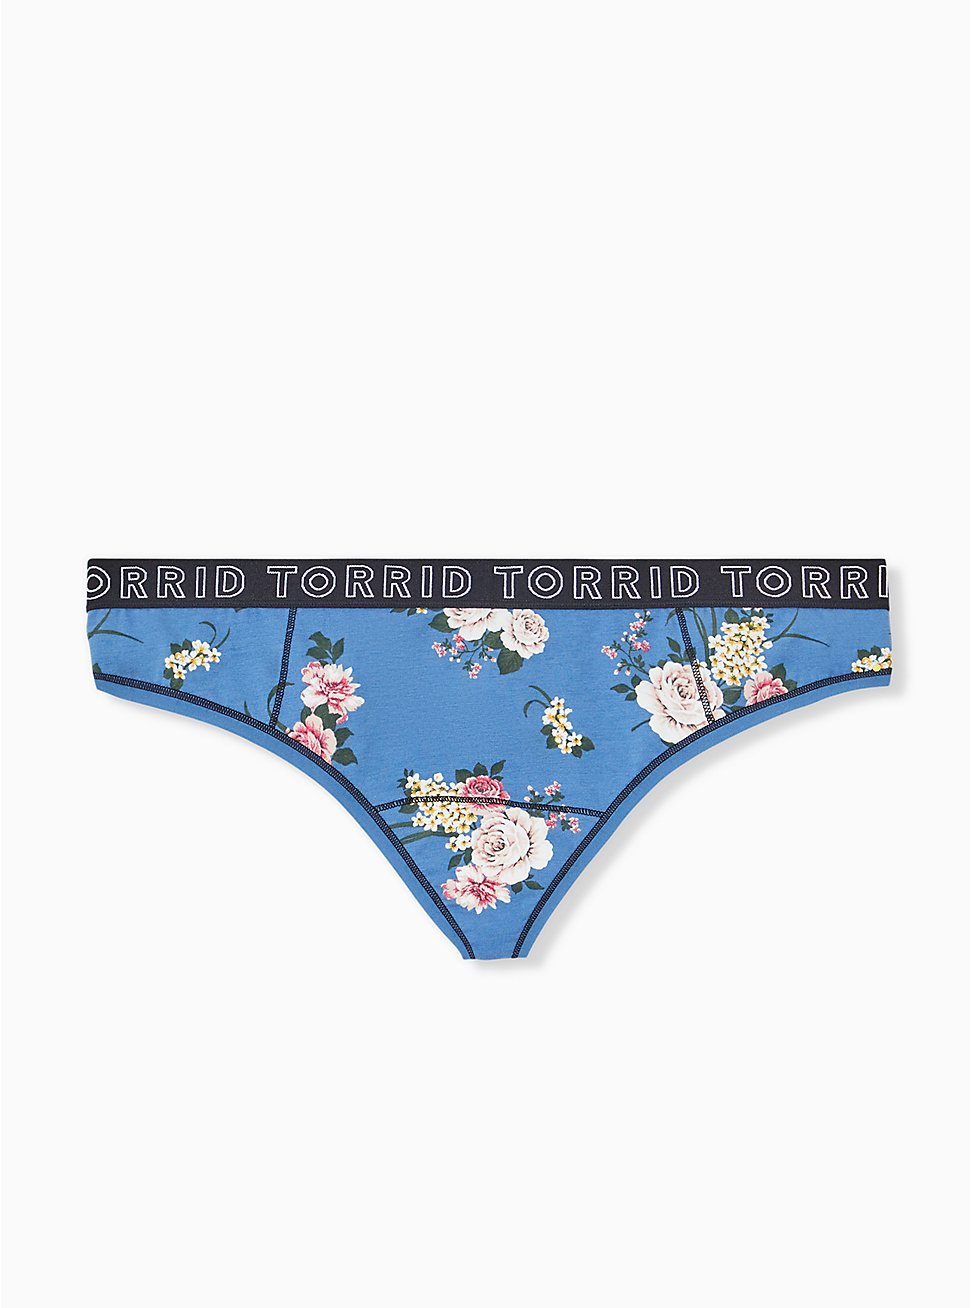 Torrid Logo Blue Floral Cotton Thong Panty, ROSE STRIPE FLORAL- BLUE, hi-res